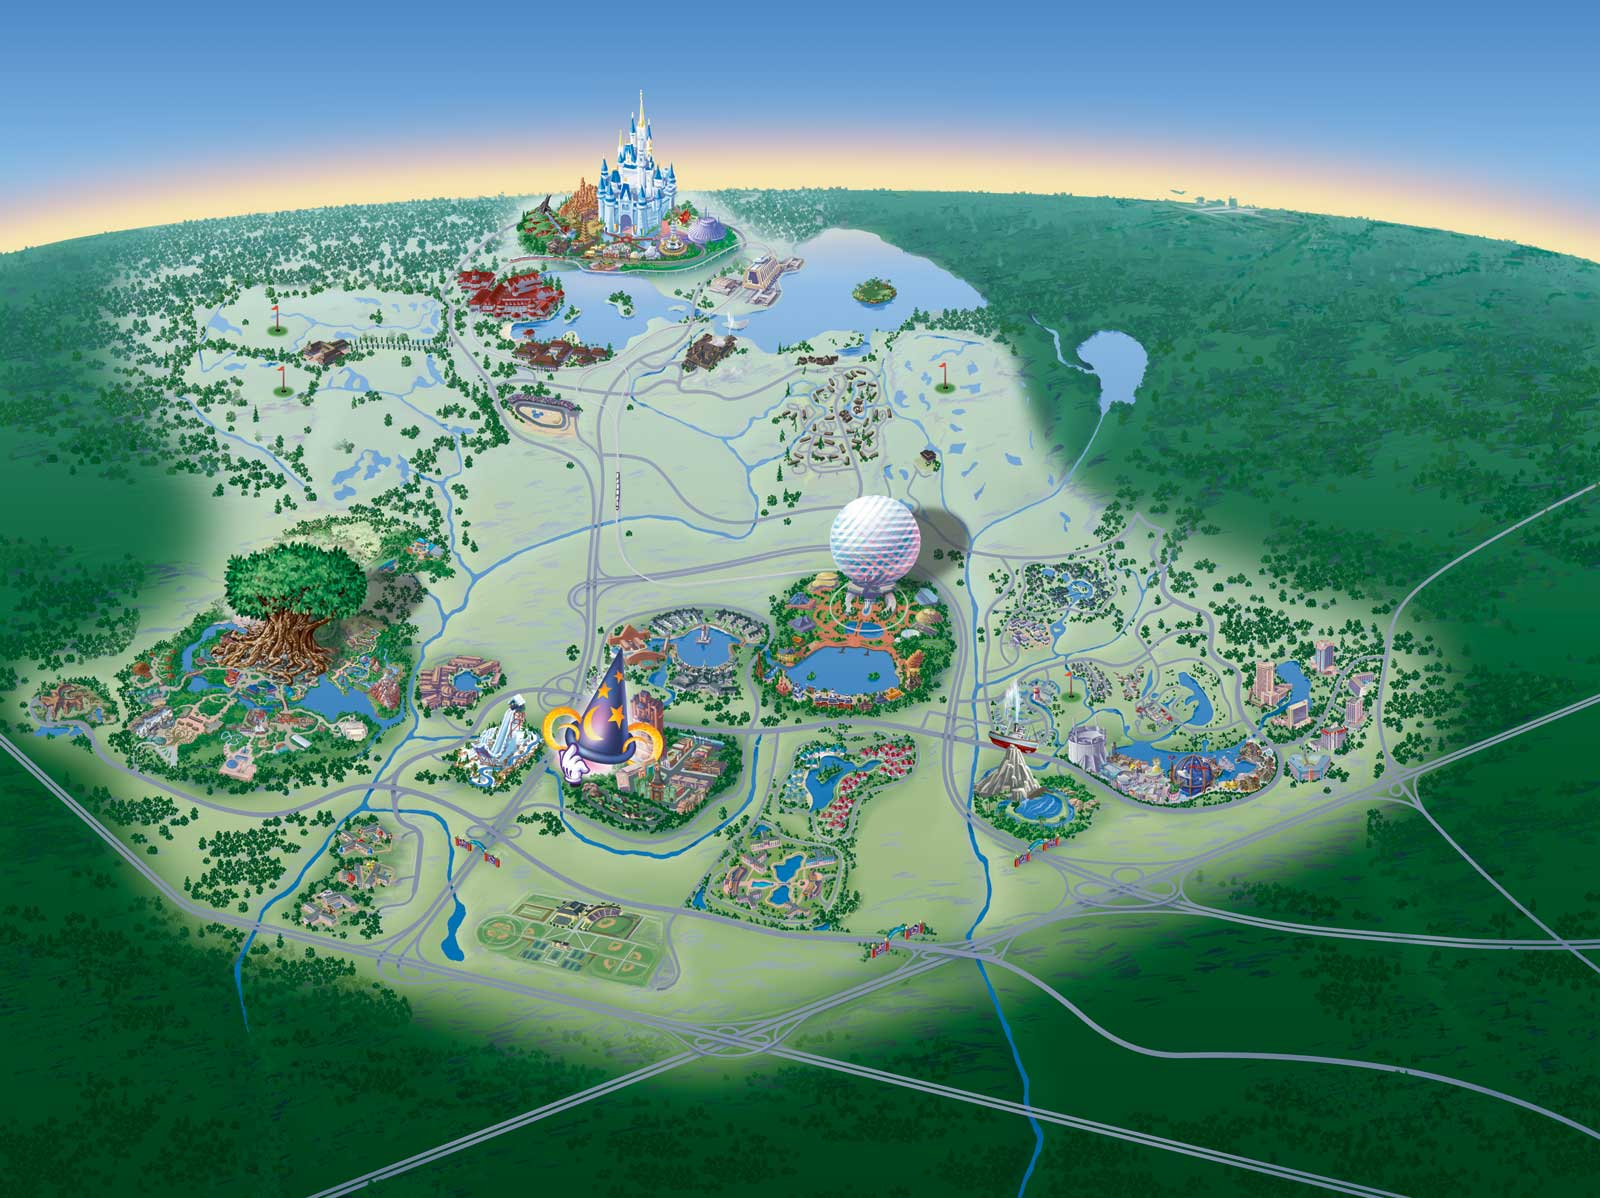 Map Of Walt Disney World Resort - Wdwinfo - Map Of Disney World In Florida